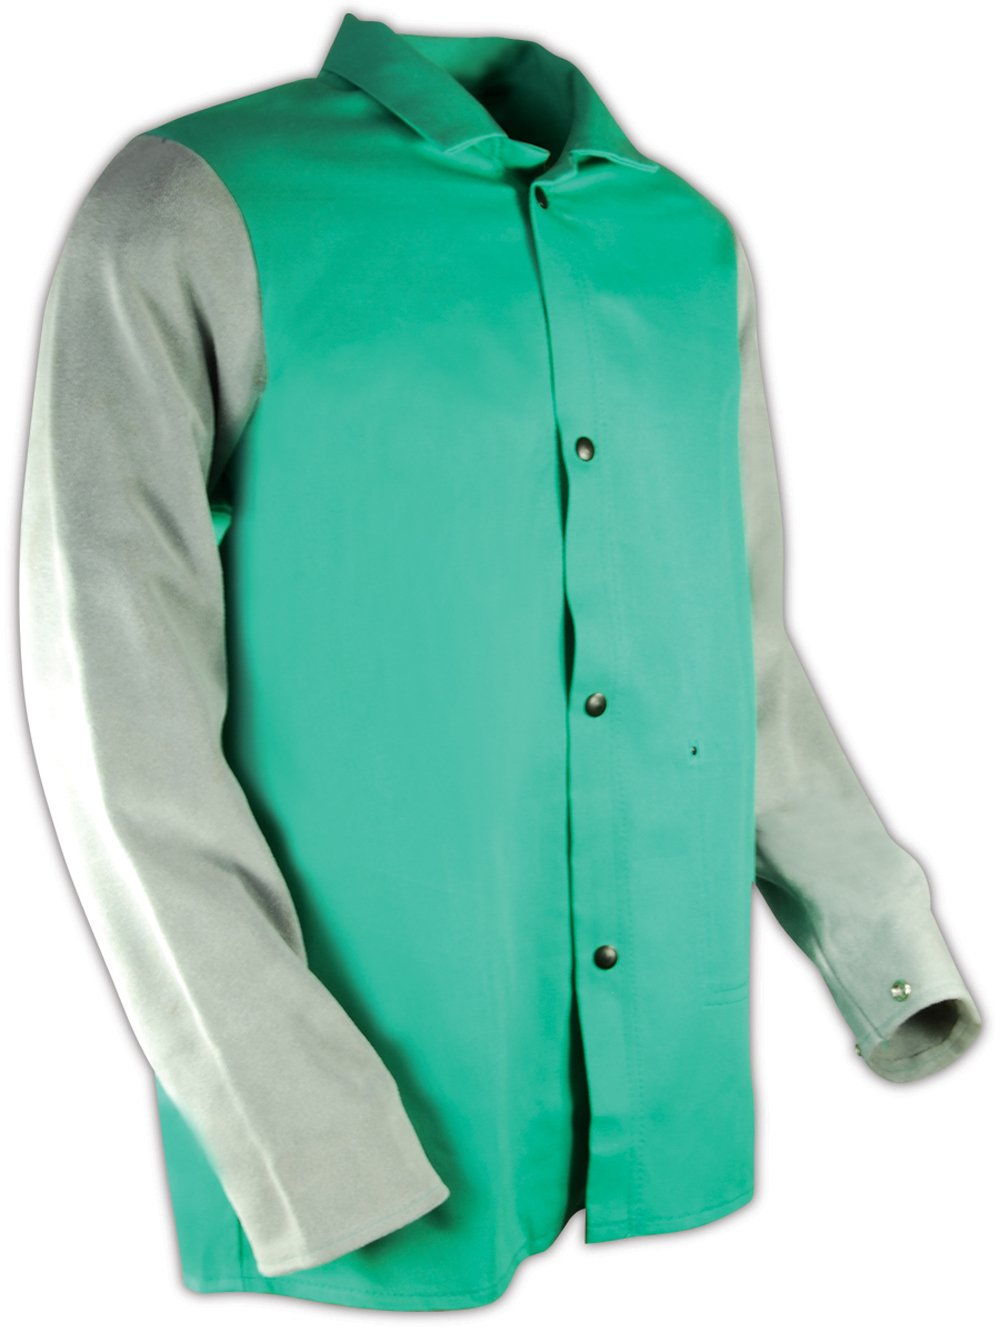 XL Green 30 Length Magid 1830LSXL SparkGuard Flame Resistant Cotton Standard Weight Jacket with Grey Leather Sleeves